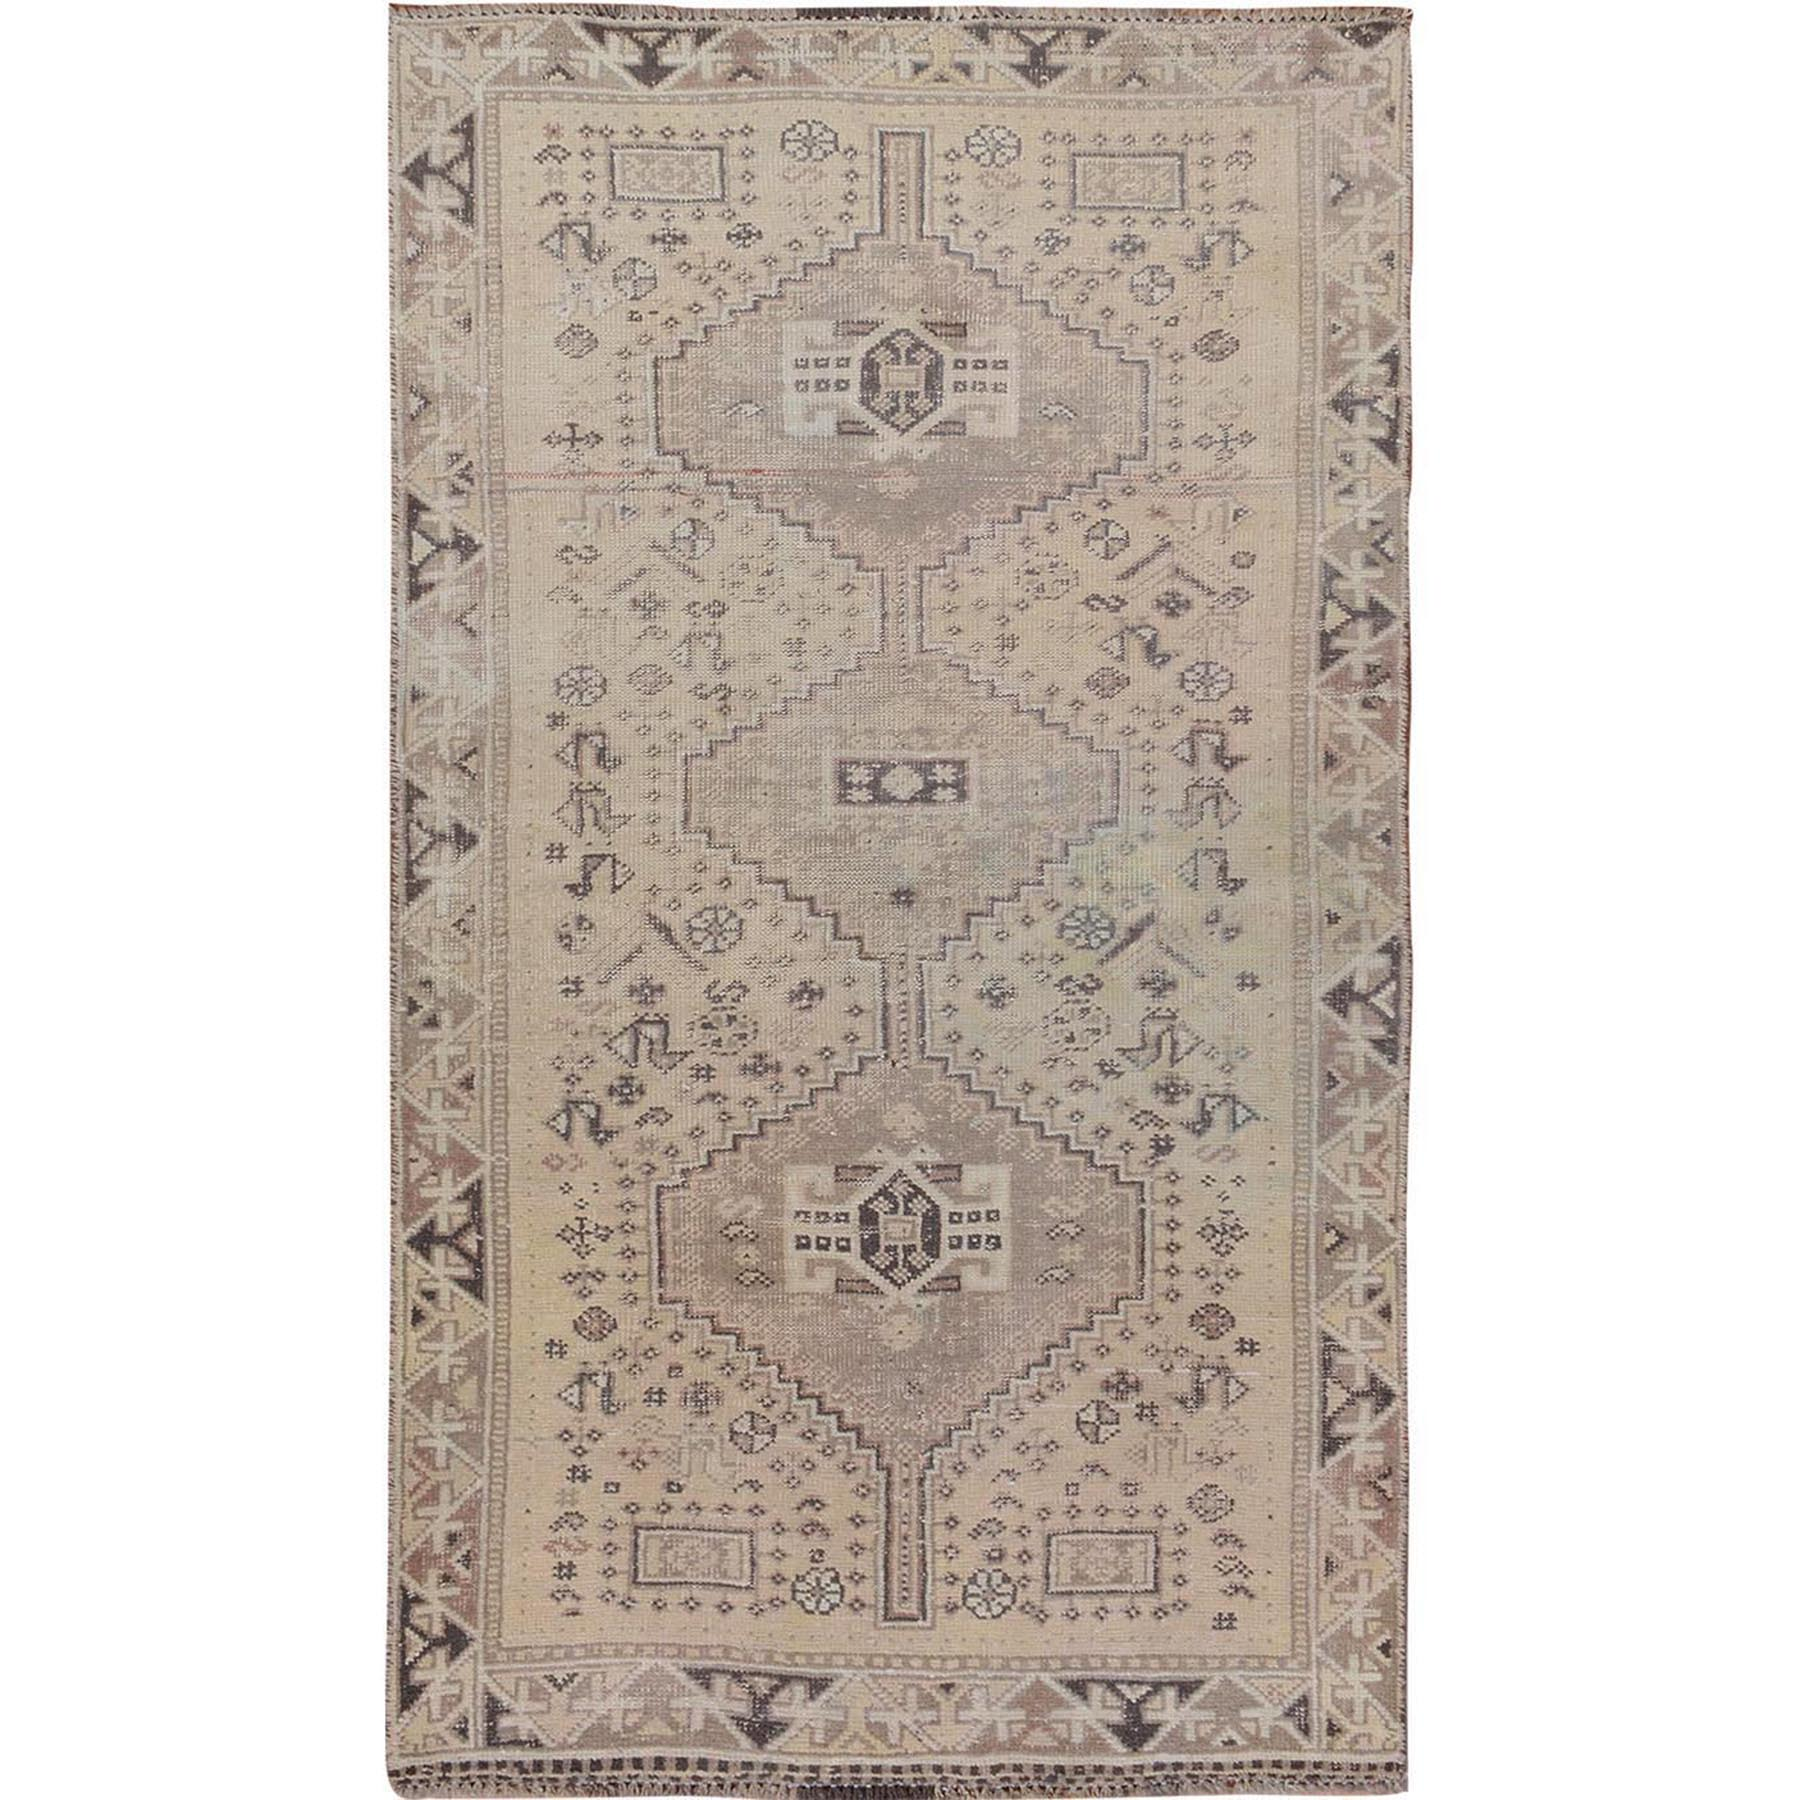 "3'4""x6'1"" Natural Colors Vintage and Worn Down Persian Qashqai Clean Pure Wool Hand Woven Oriental Rug"